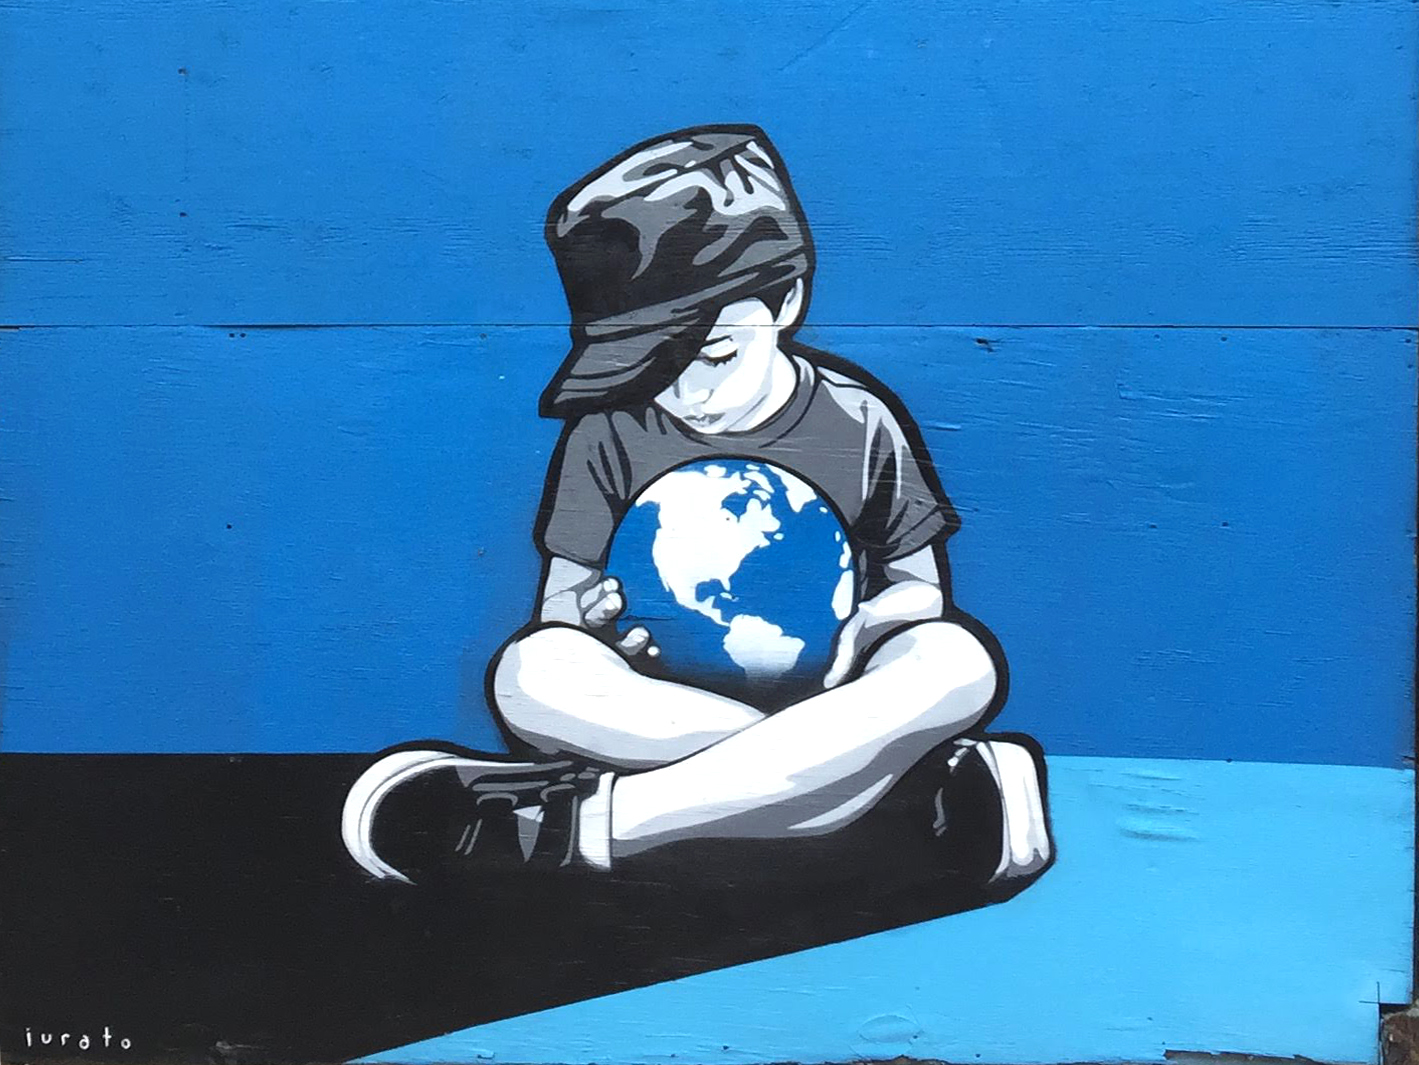 amy_chen_design_surfrider_asbury_park_new_jersey_beach_clean_iurato_boy_earth_mural.jpg